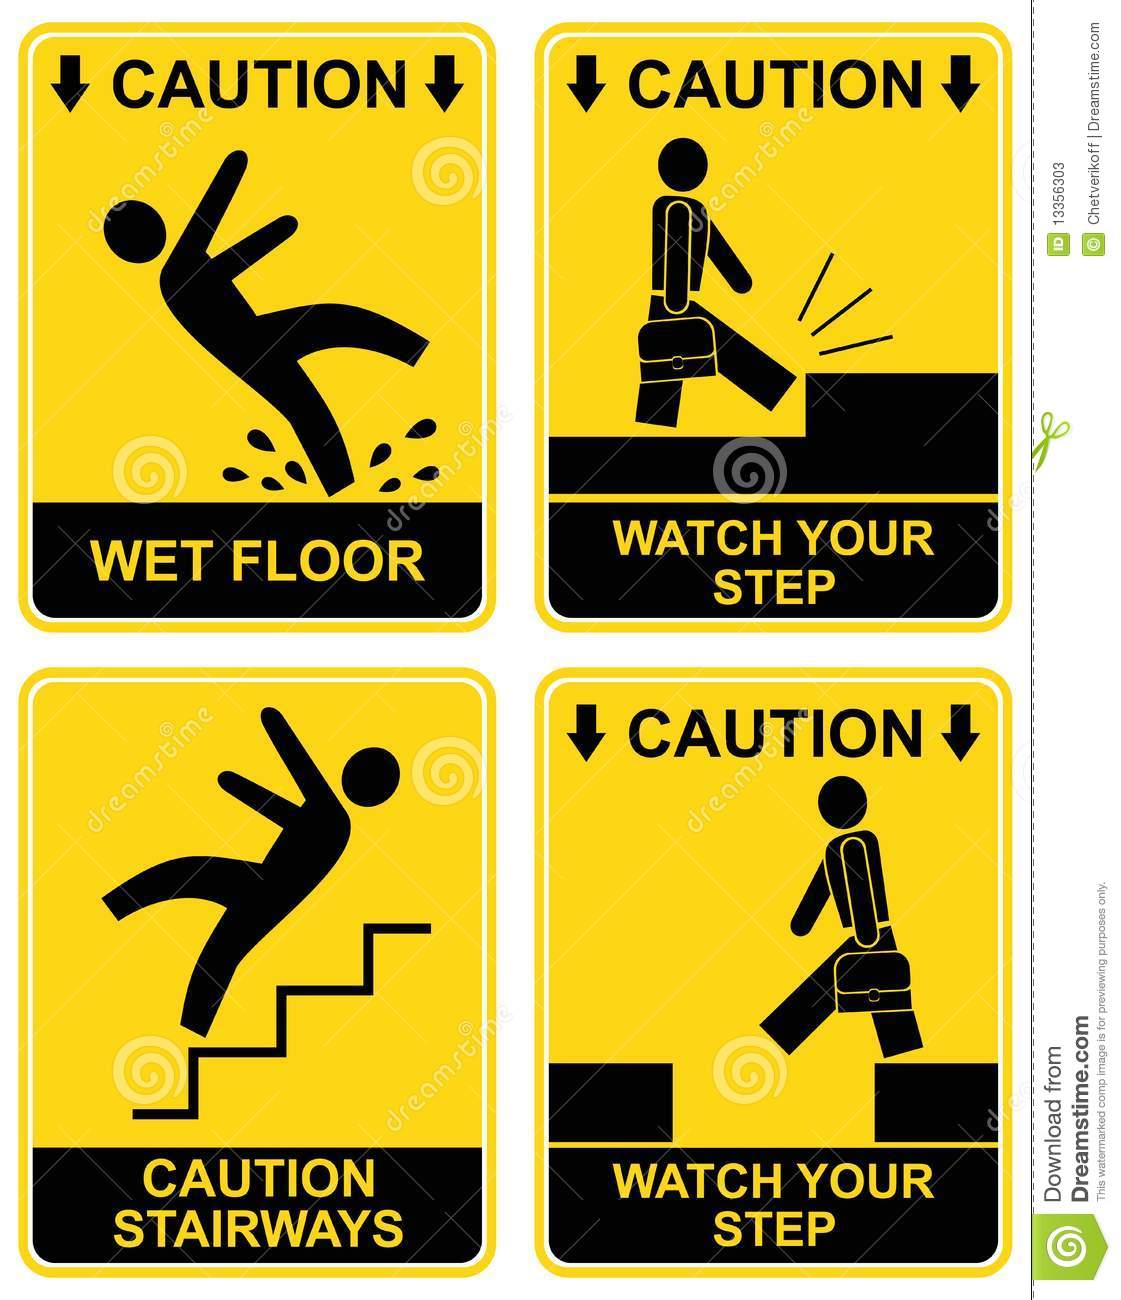 Wet floor, stairways, watch your step - set of caution signs. Yellow ...